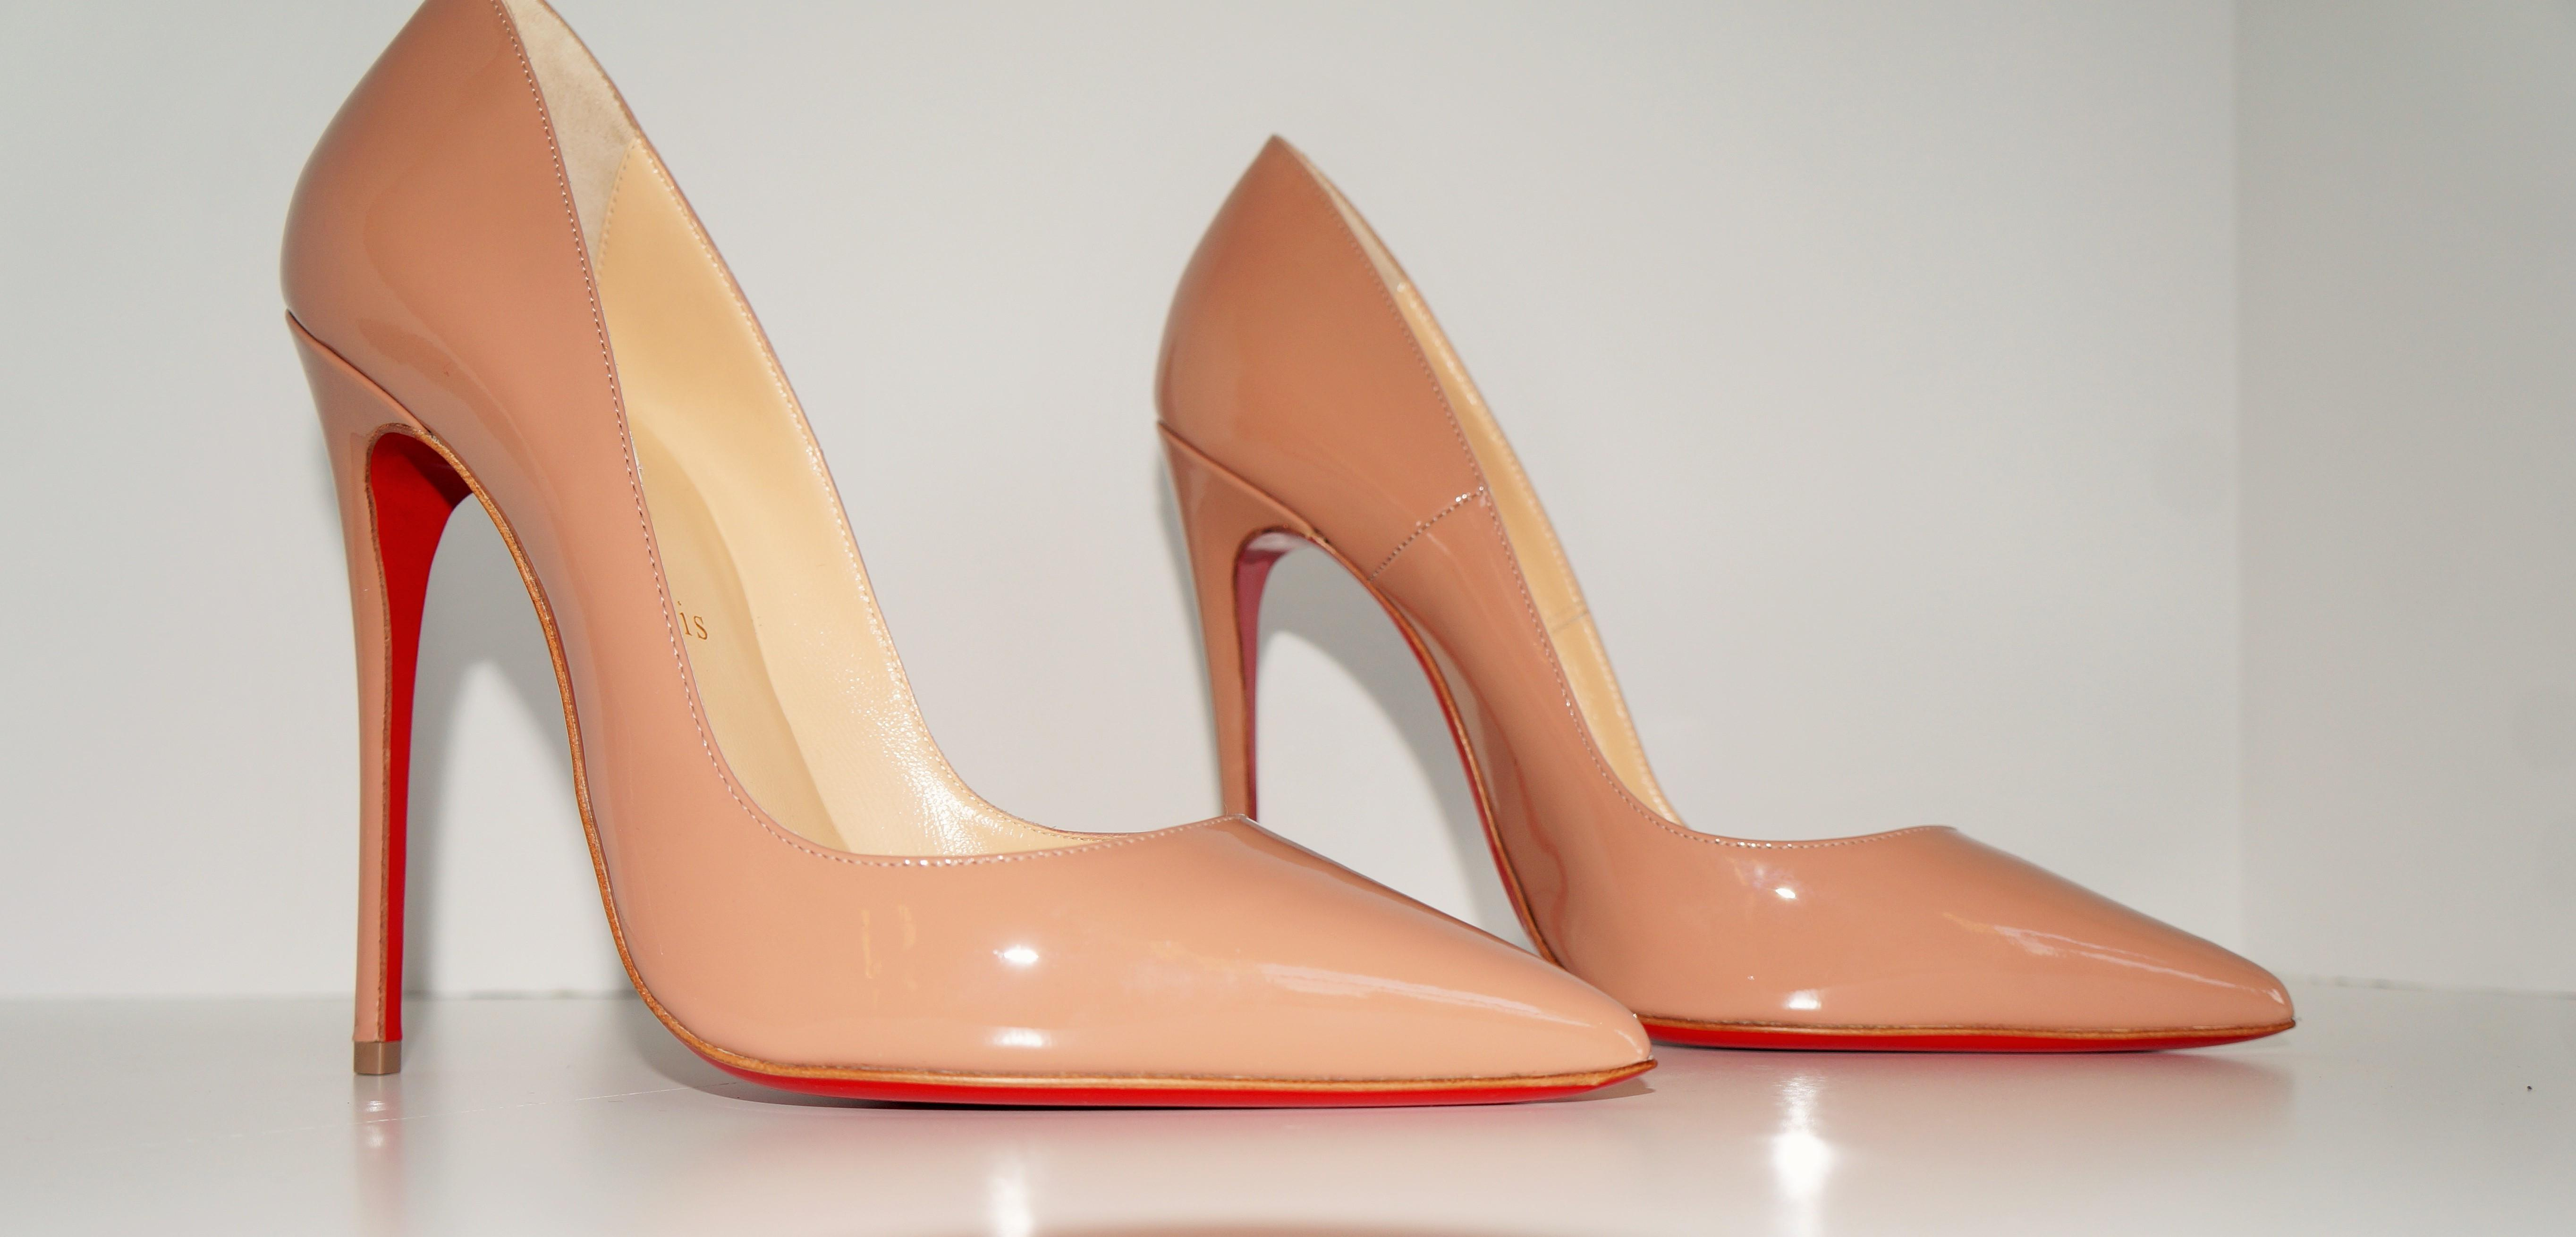 meet 05187 81644 Christian Louboutin Nude 1/2 So Kate Patent Red Red Red Sole ...